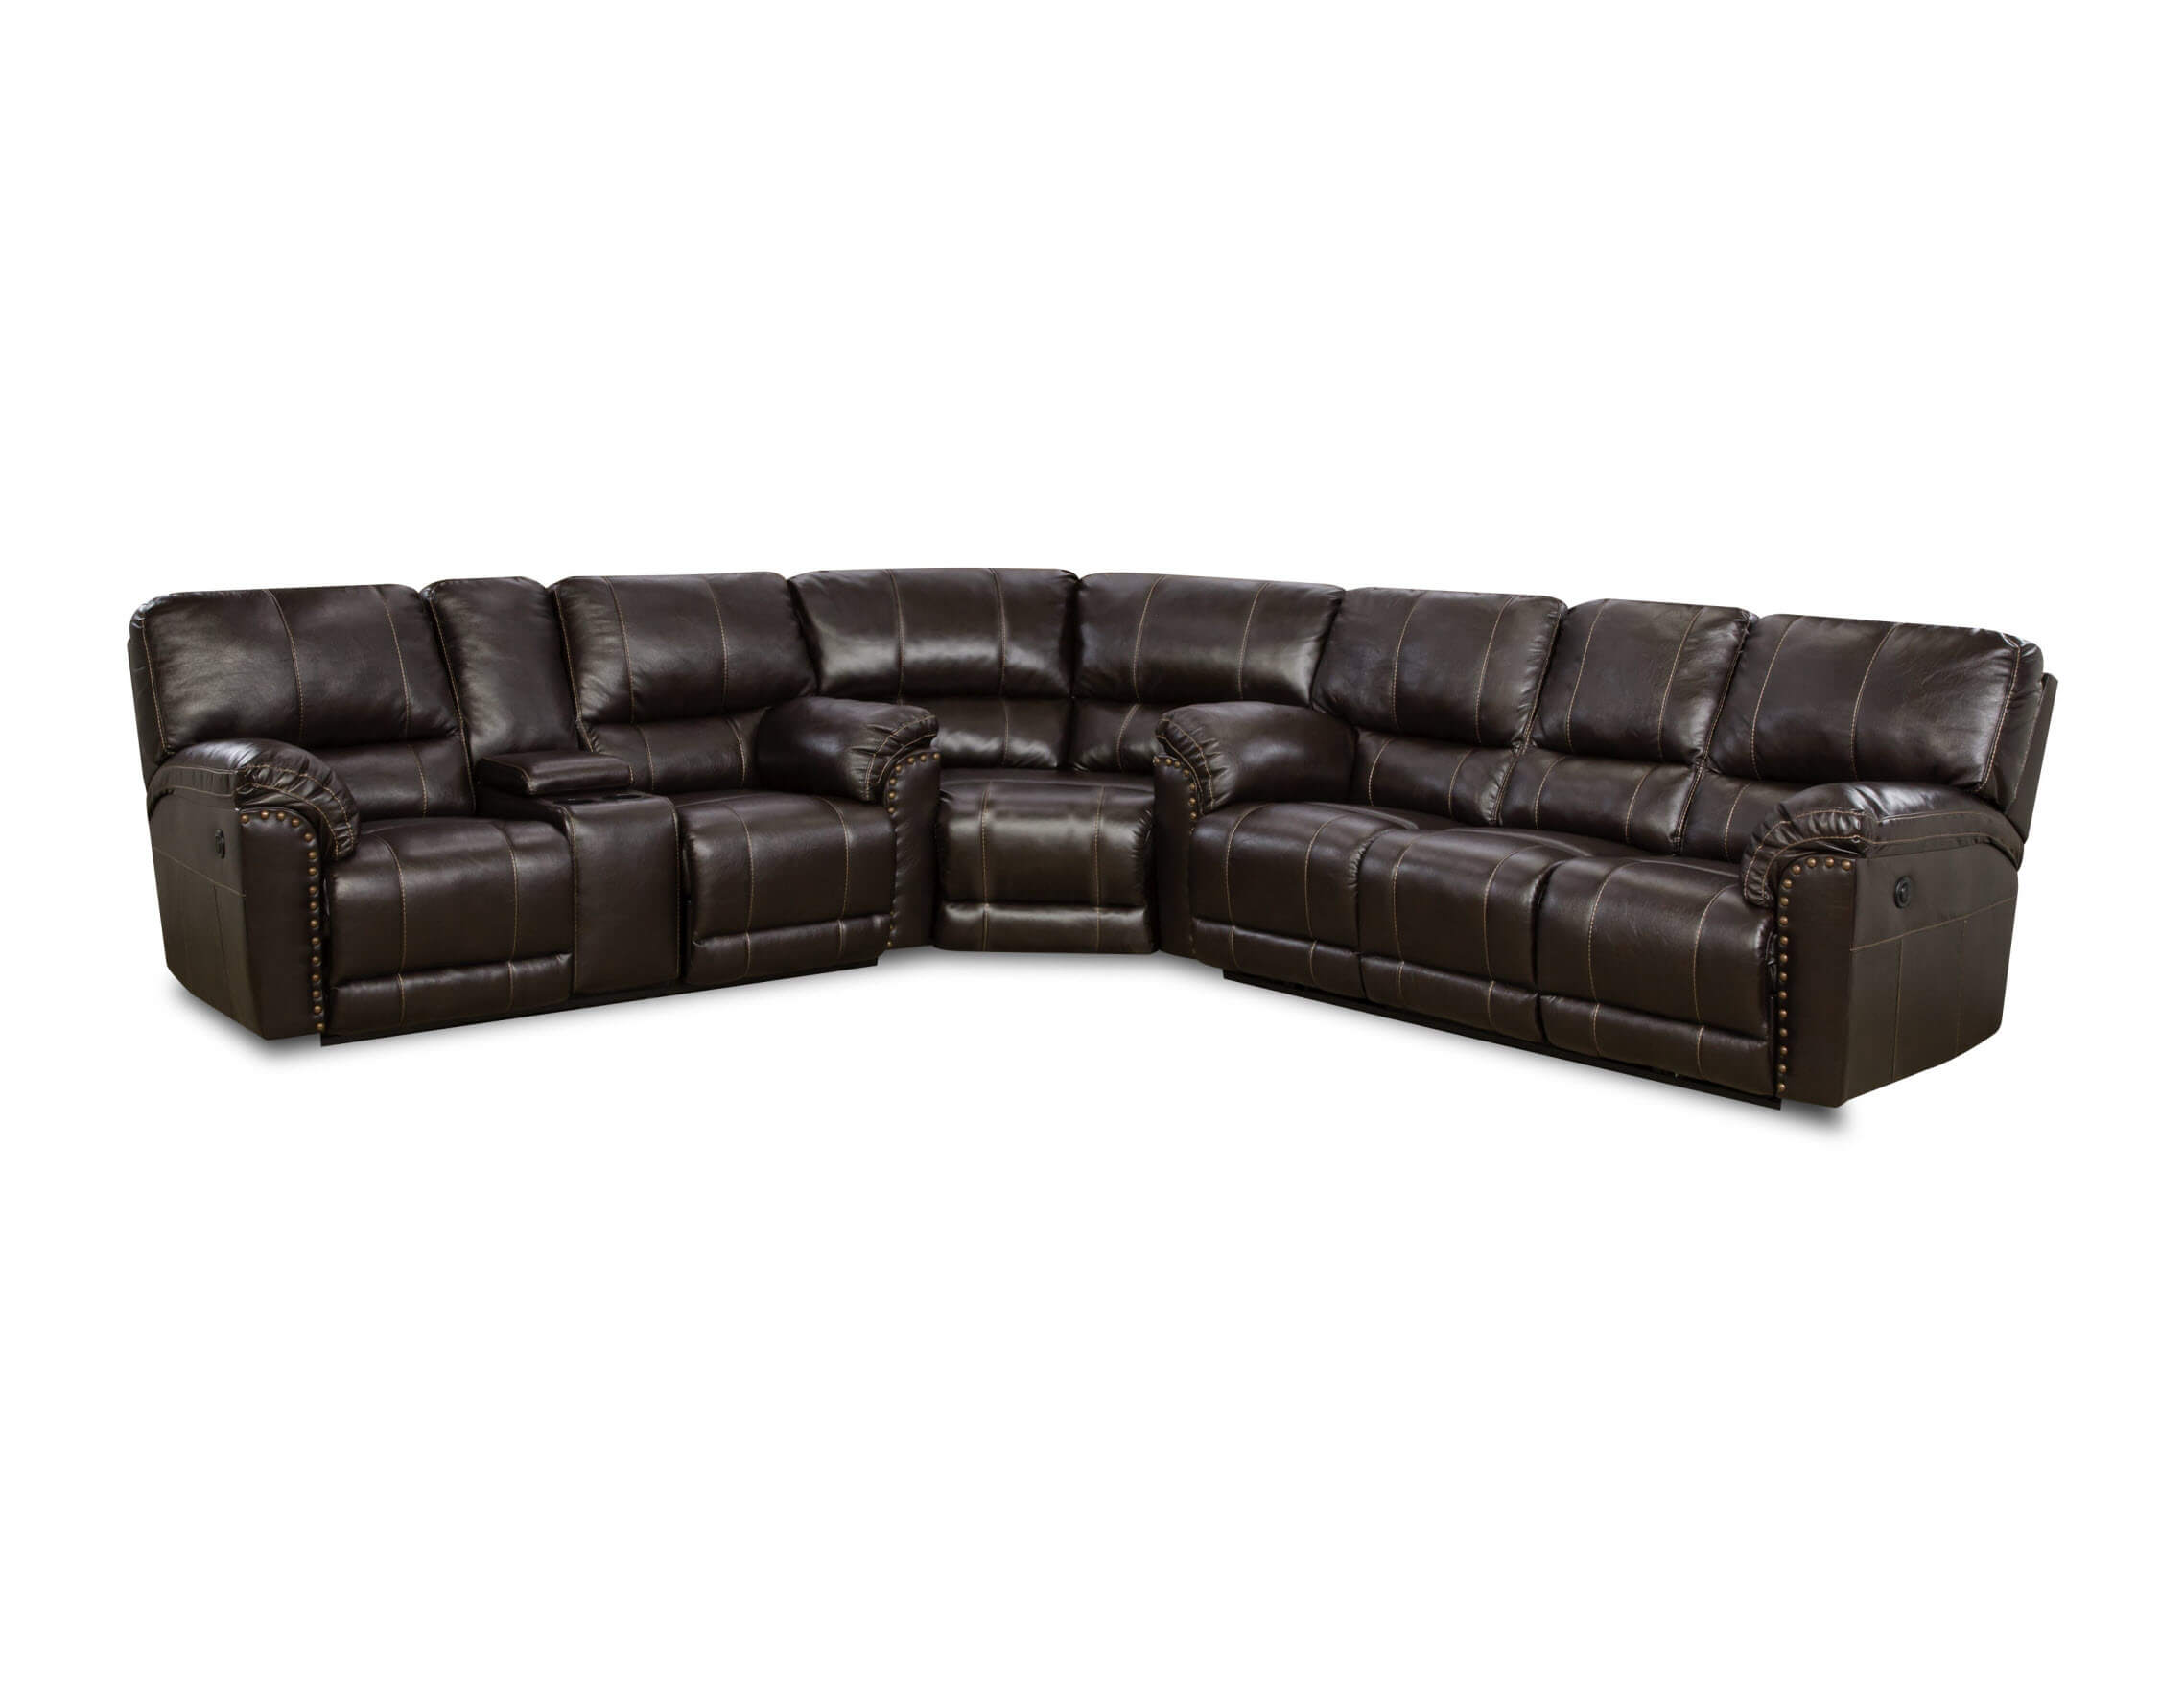 Abilene Chestnut Reclining Sectional by Simmons